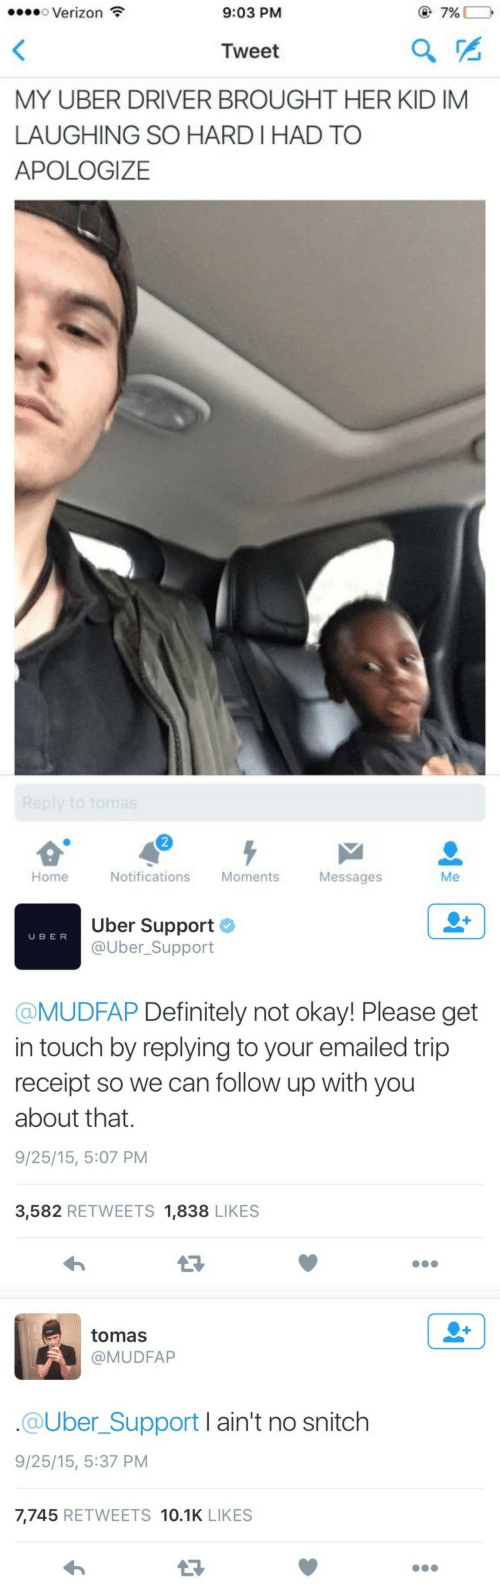 ber: o Verizon  9:03 PM  @7%  Tweet  MY UBER DRIVER BROUGHT HER KID IM  LAUGHING SO HARD I HAD TO  APOLOGIZE  2  Home  Notifications Moments  Messages  Me   Uber Support  @Uber_Support  U BER  @MUDFAP Definitely not okay! Please get  in touch by replying to your emailed trip  receipt so we can follow up with you  about that.  9/25/15, 5:07 PM  3,582 RETWEETS 1,838 LIKES   tomas  @MUDFAP  @Uber_Support I ain't no snitch  9/25/15, 5:37 PM  7,745 RETWEETS 10.1K LIKES  13